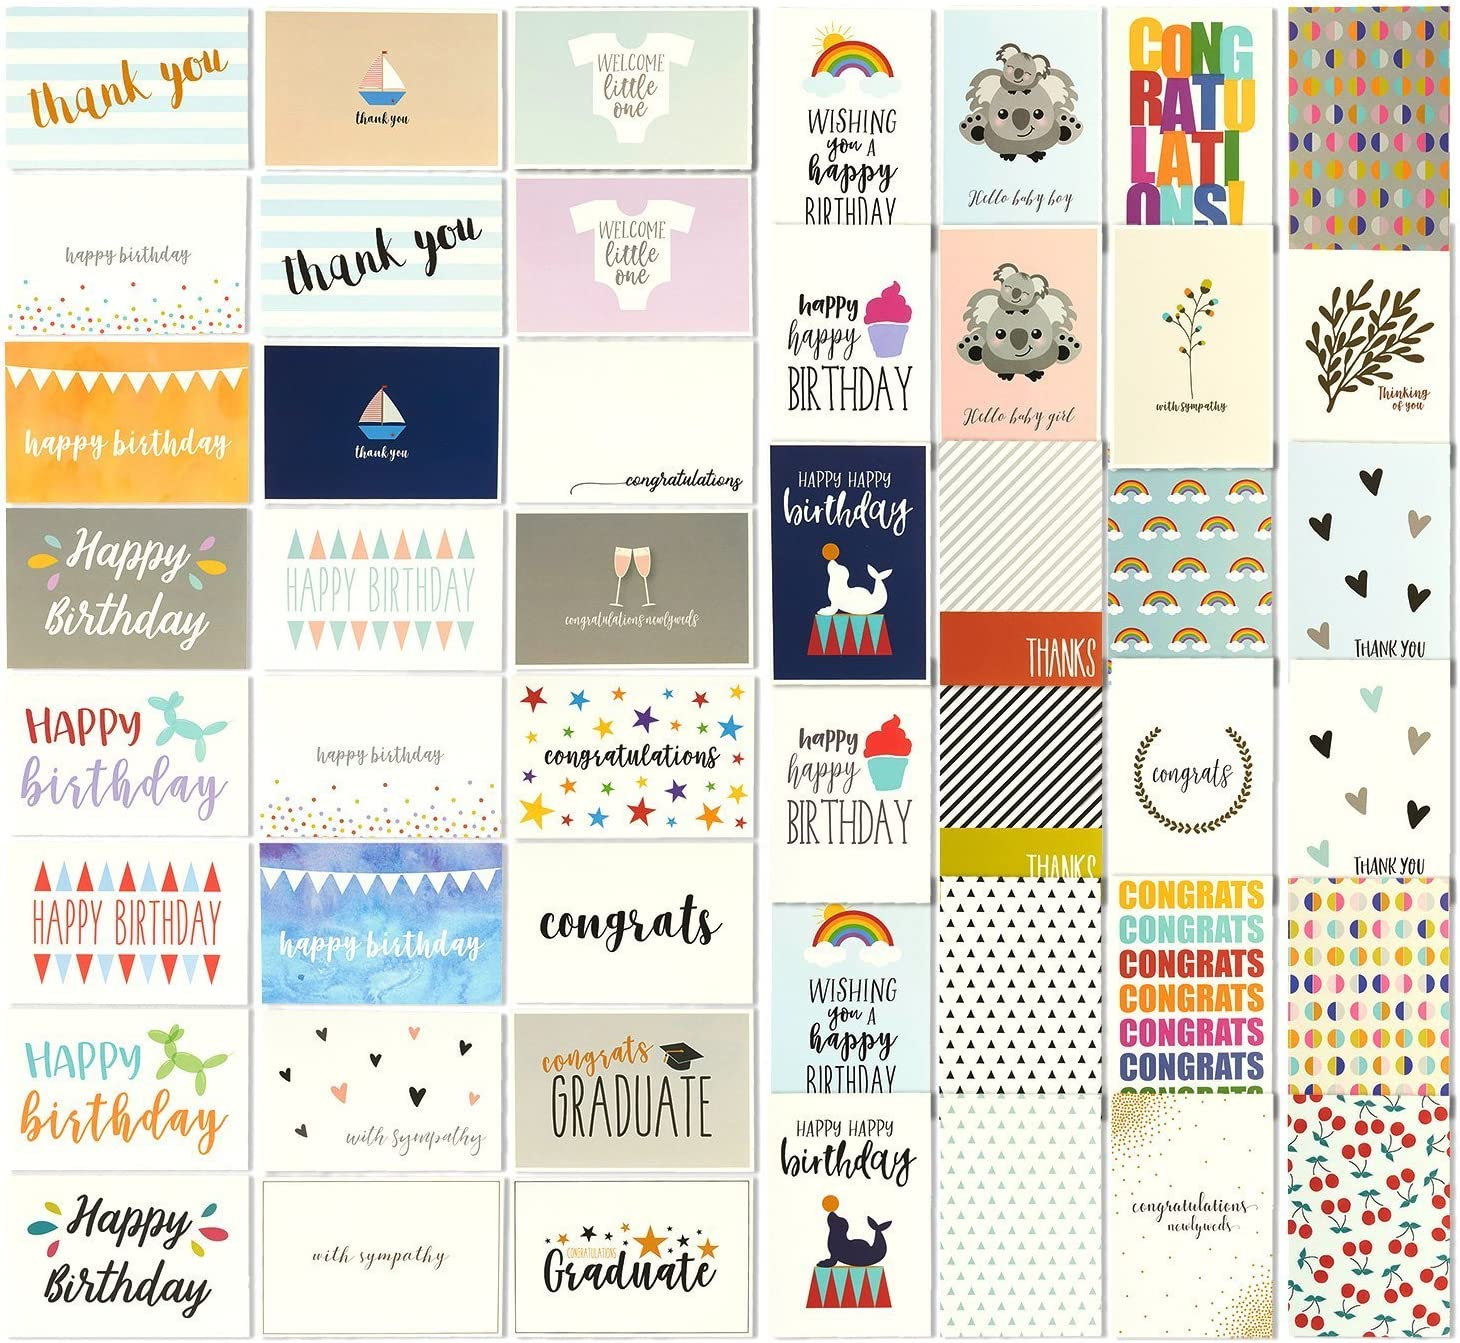 144 Greeting Cards Assortment Bulk Box for All Occasions, Birthday, Graduation, Baby Shower & Thank You, 48 Various Designs with Envelopes, 4 x 6 Inches